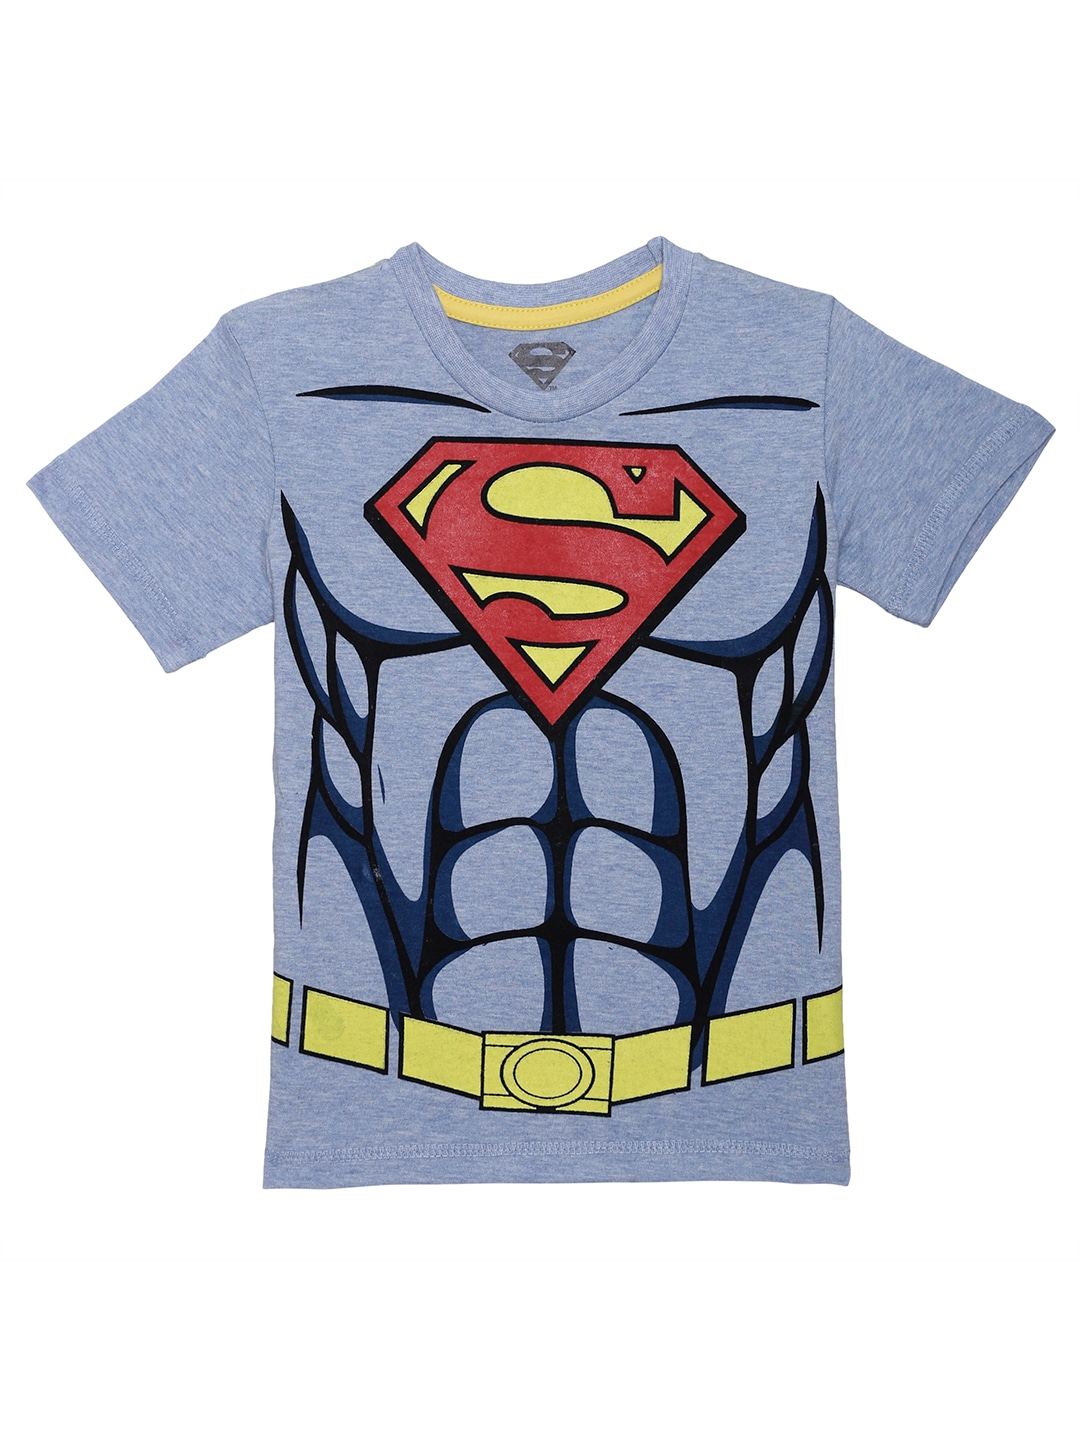 3f9a85a602c Boys Clothing - Buy Latest   Trendy Boys Clothes Online